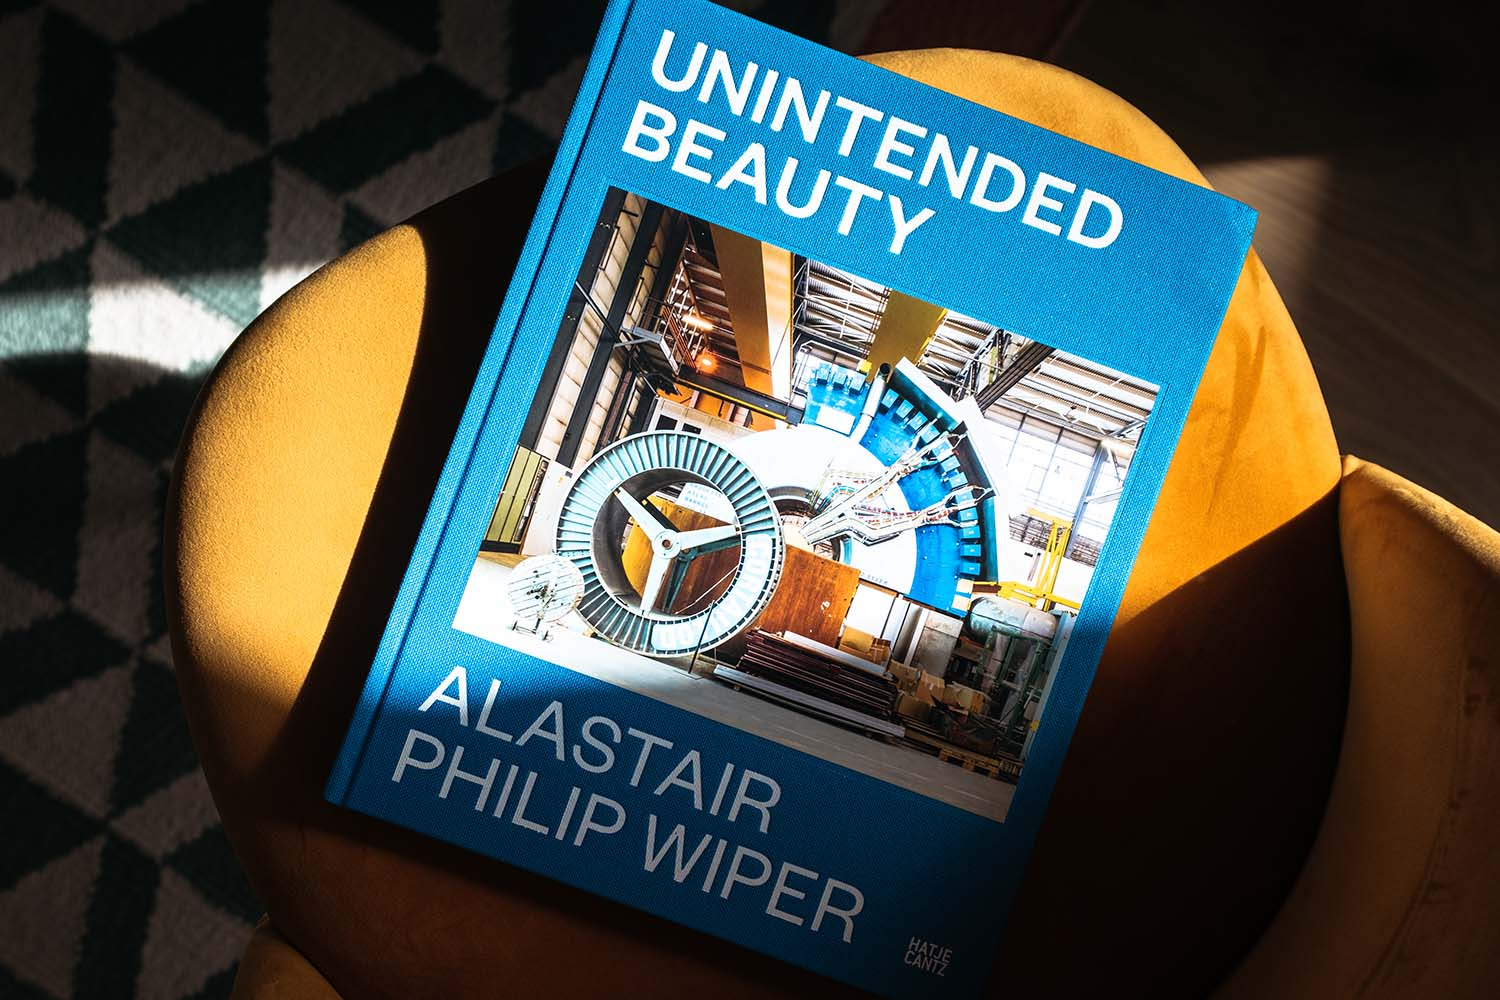 Alastair Philip Wiper, Unintended Beauty